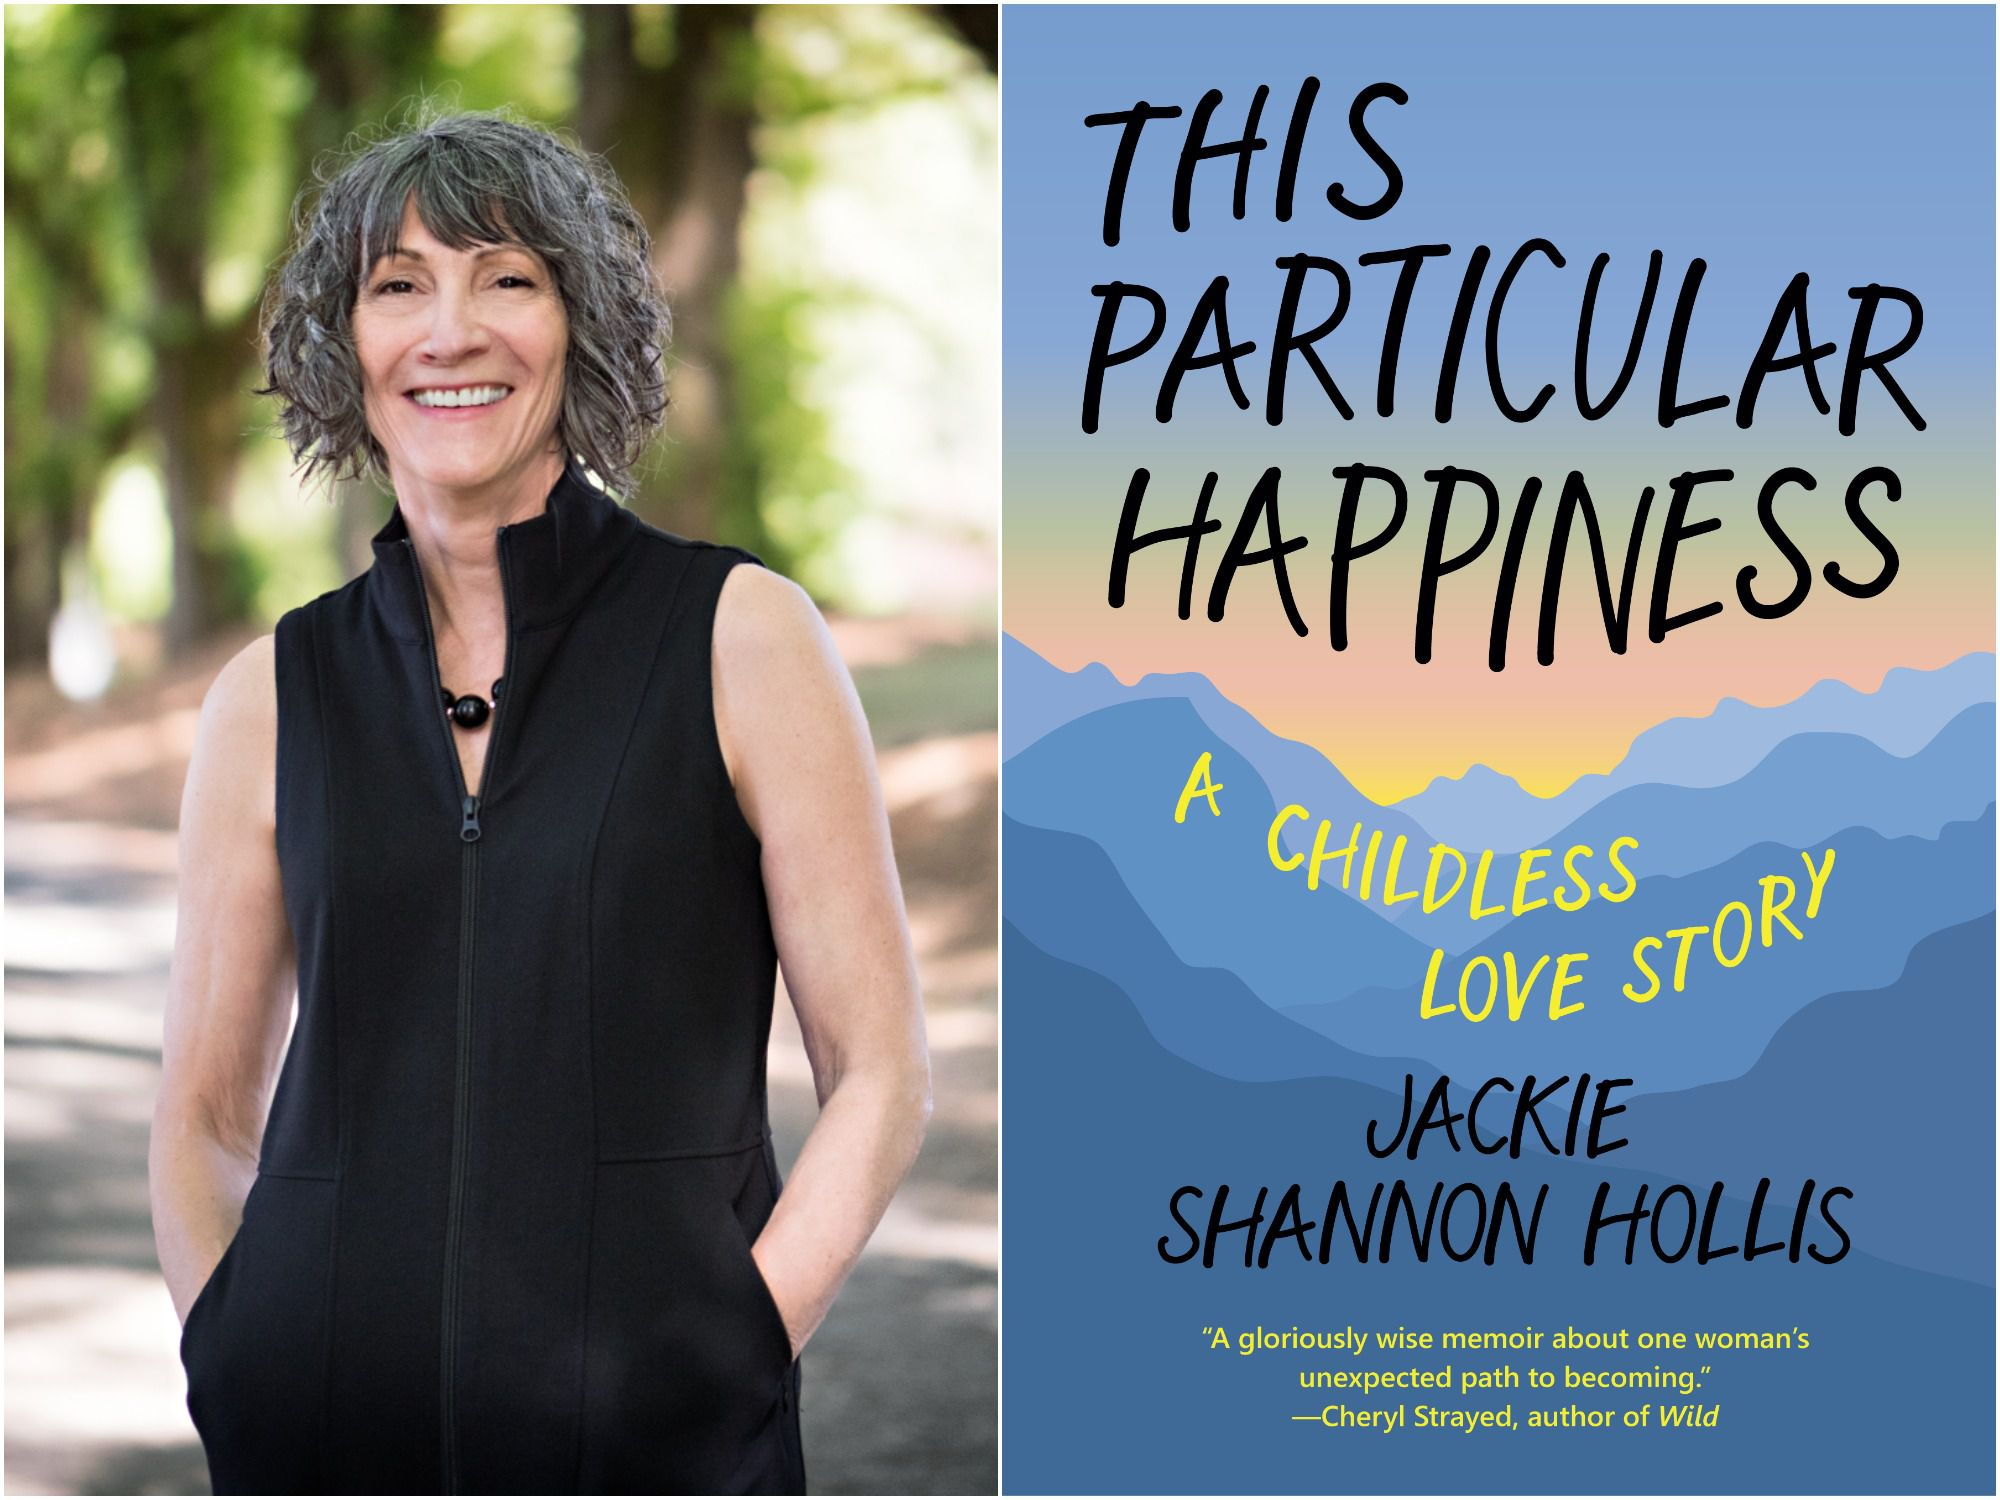 Jackie Shannon Hollis - This Particular Happiness